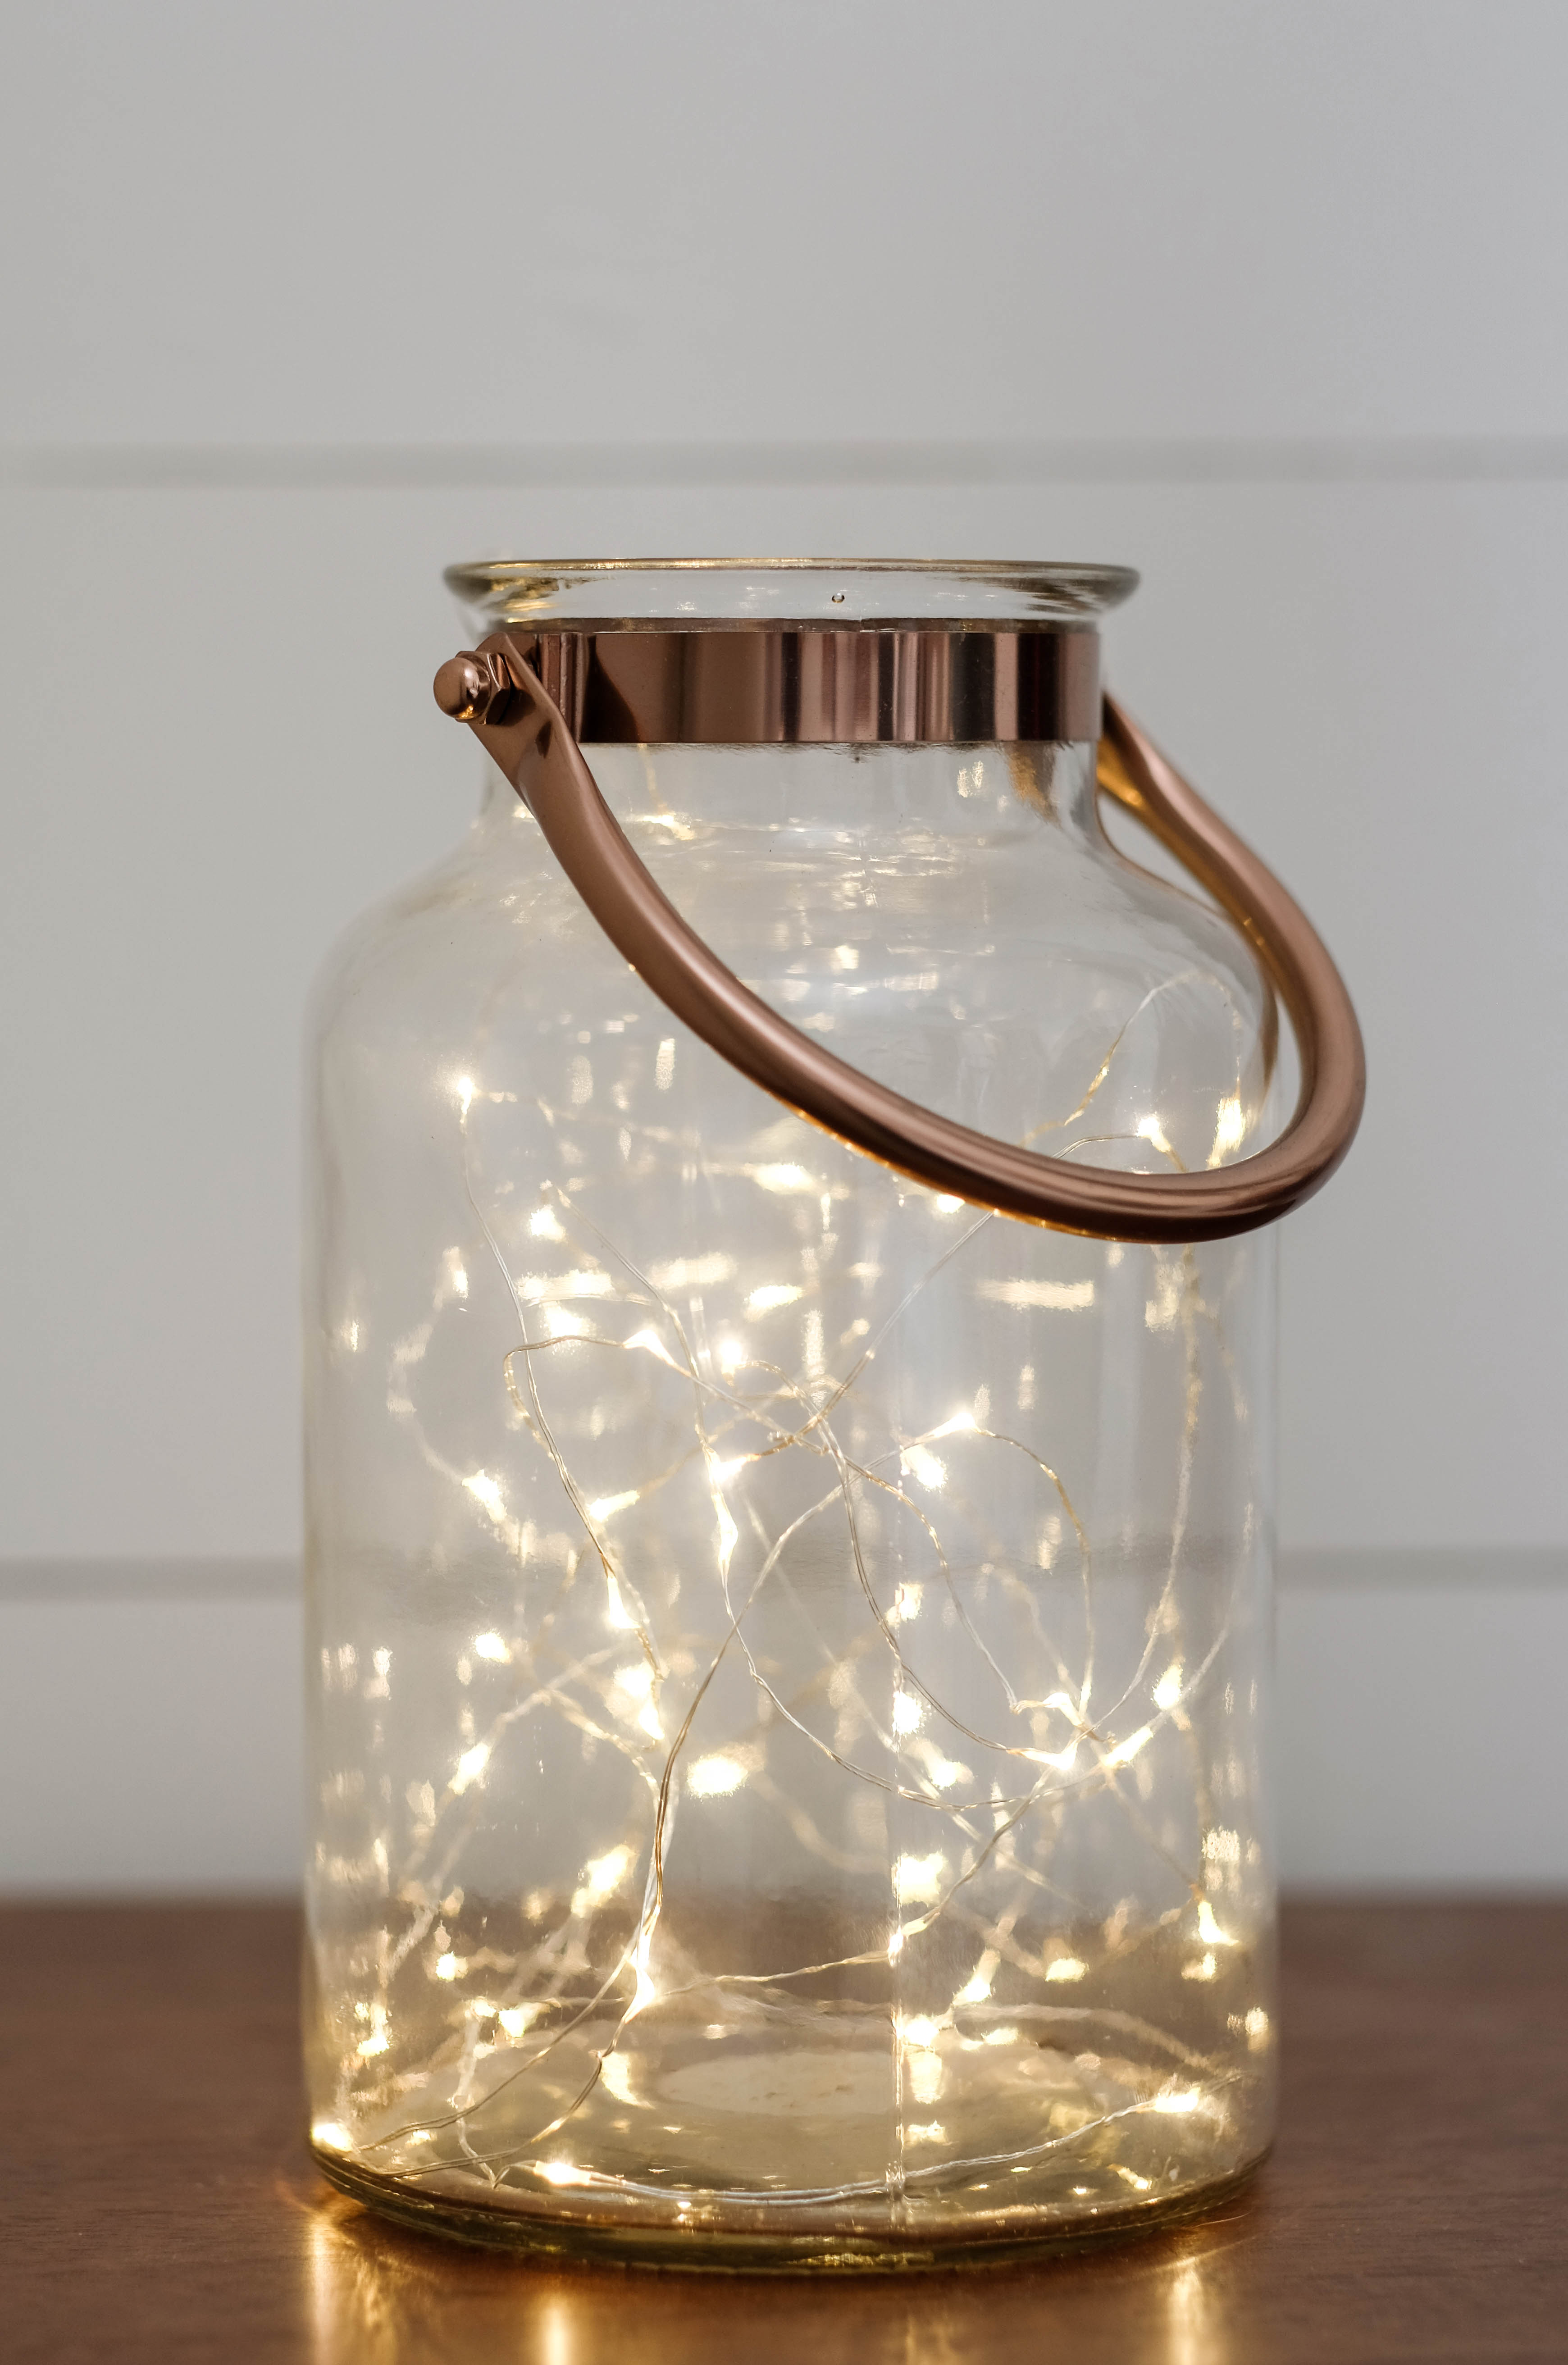 Lantern filled with christmas lights